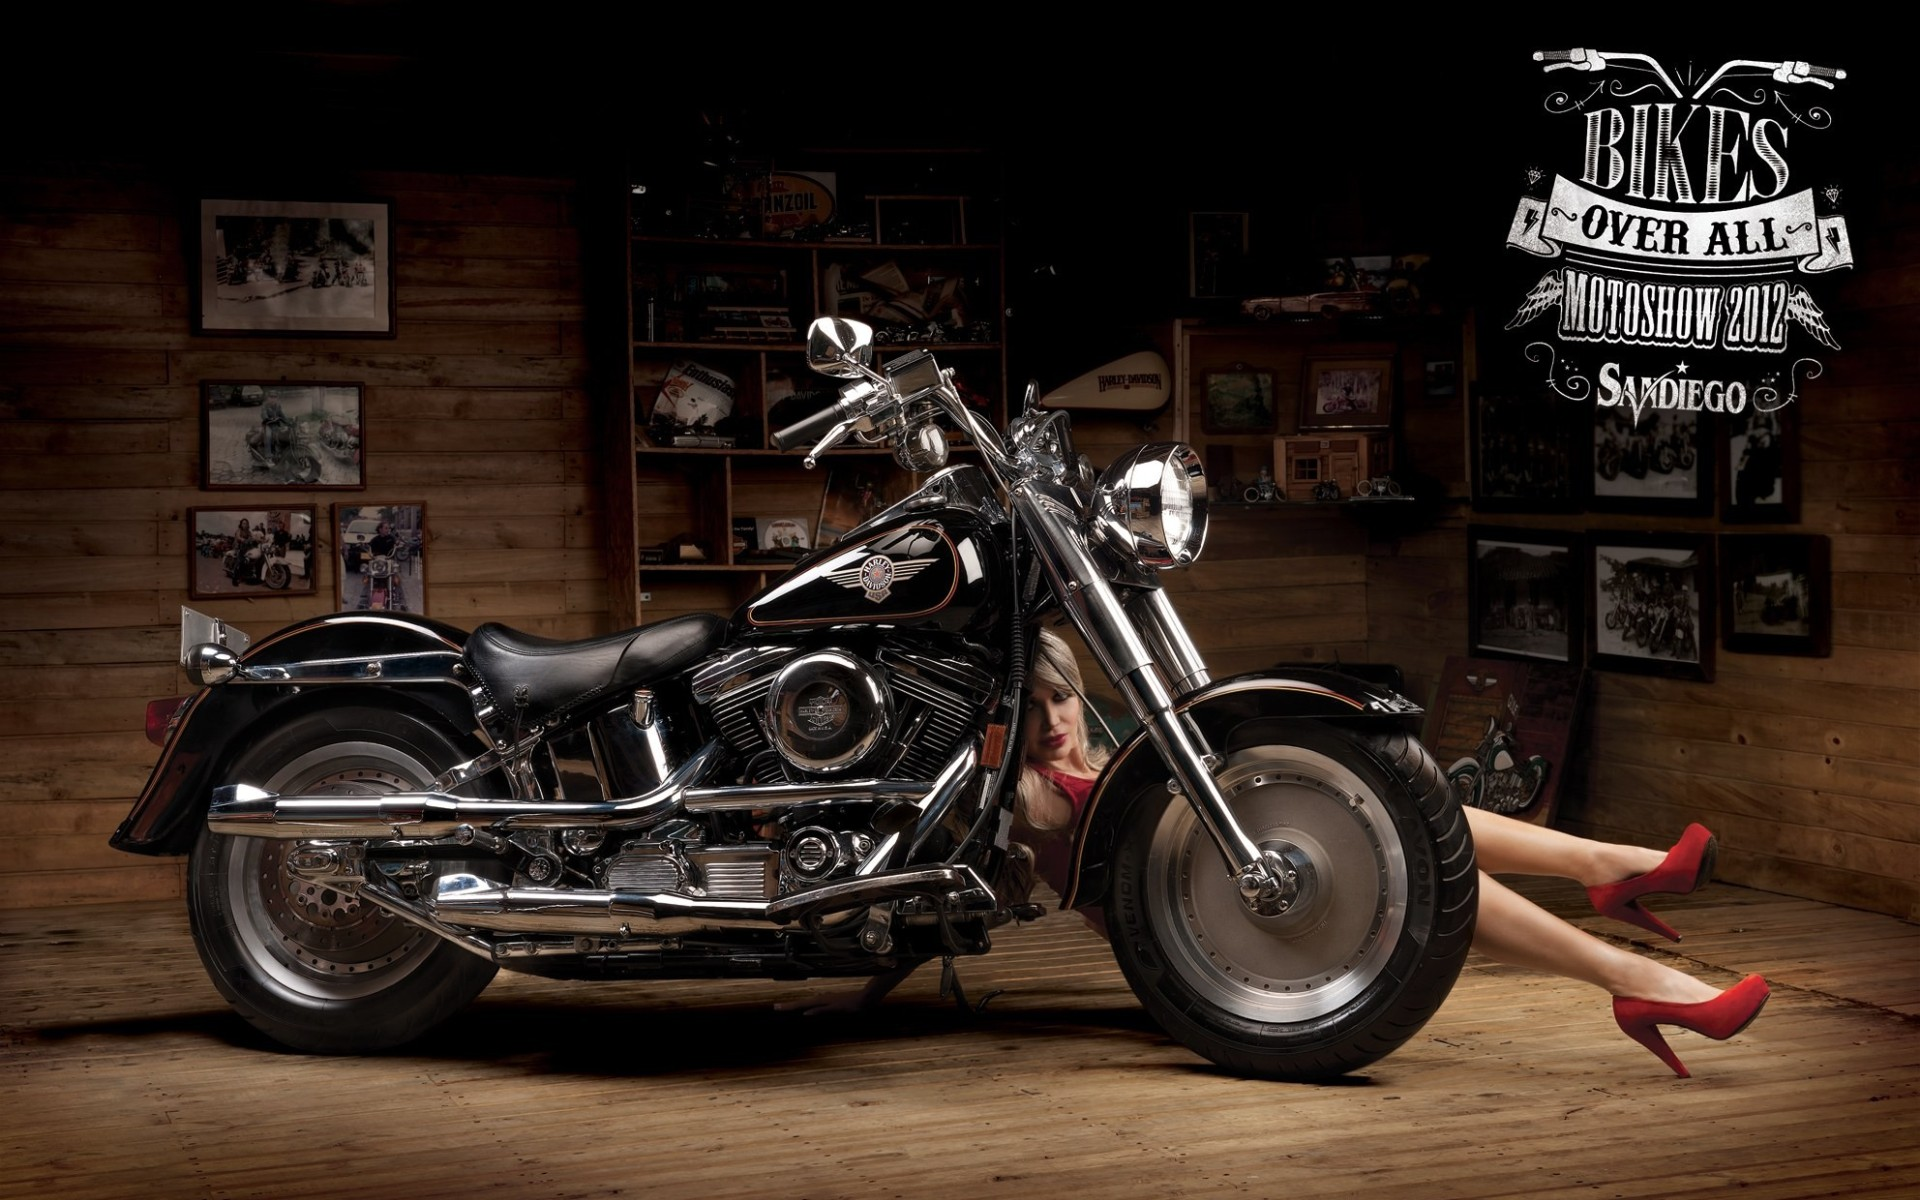 Harley Davidson Wallpaper HD Widescreen 1920x1200